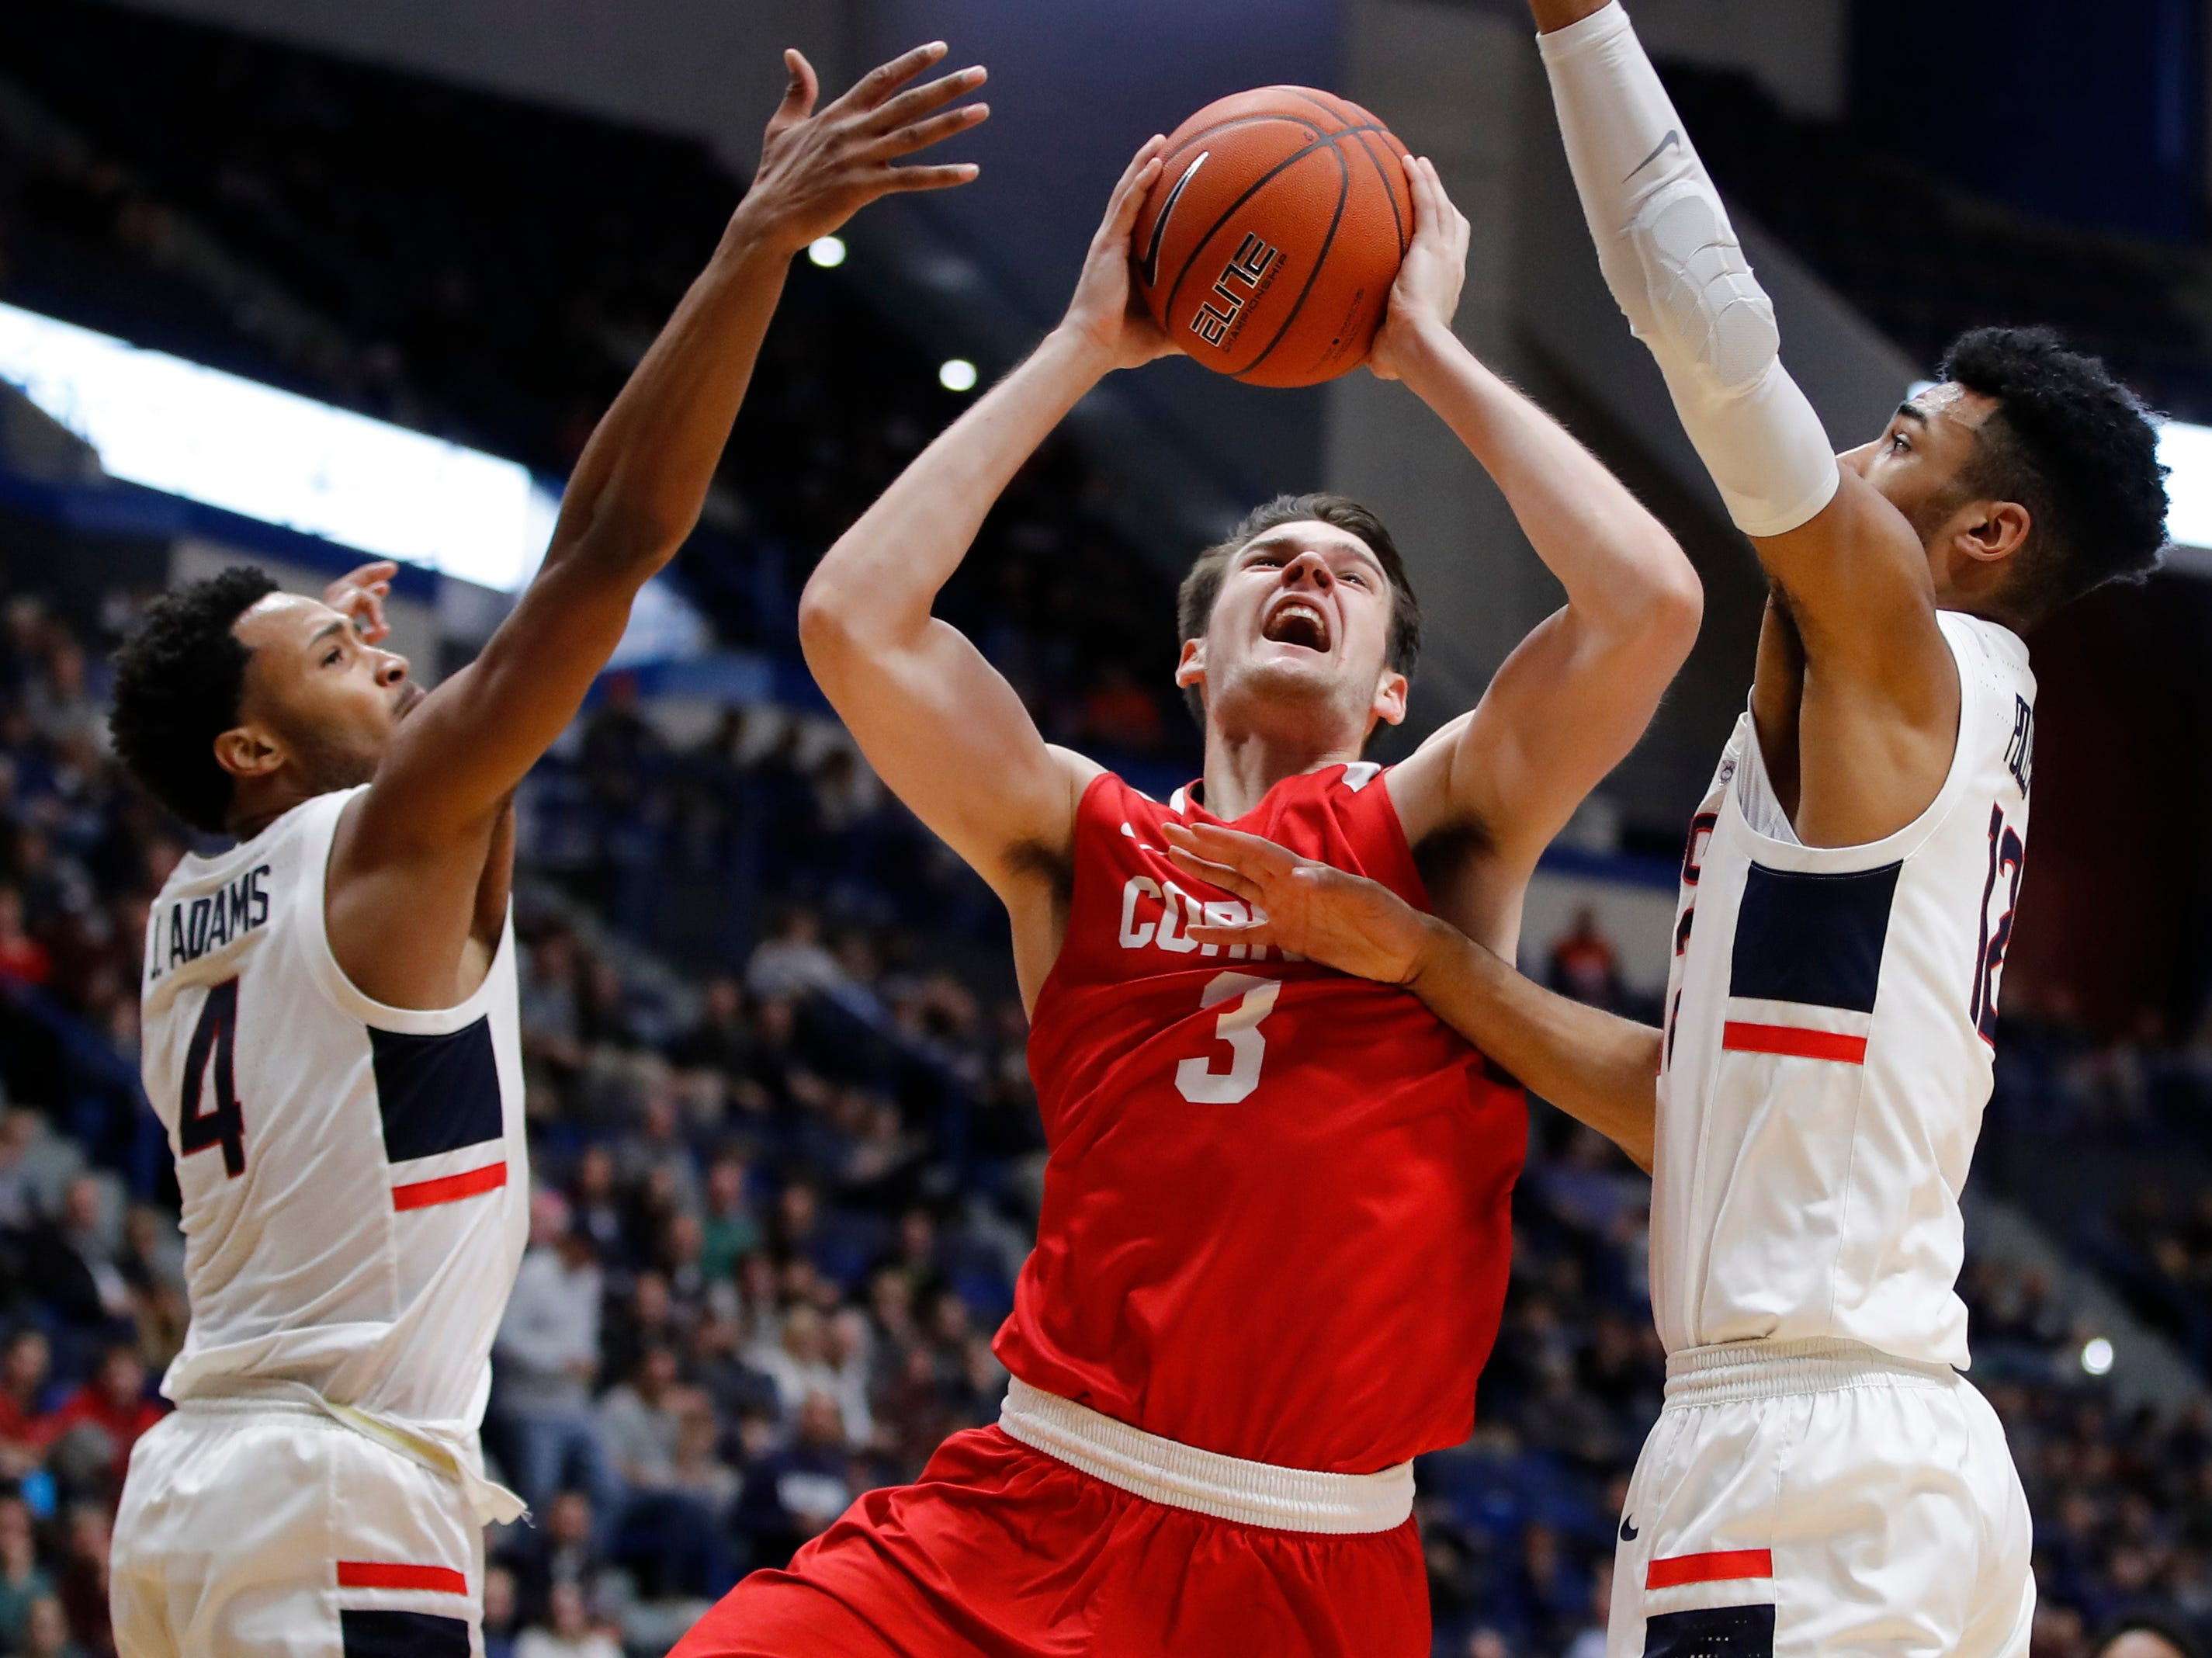 Nov 20, 2018; Storrs, CT, USA; Cornell Big Red forward Jimmy Boeheim (3) shoots between Connecticut Huskies guard Jalen Adams (4) and forward Tyler Polley (12) in the second half at XL Center. UConn defeated Cornell 91-74. Mandatory Credit: David Butler II-USA TODAY Sports